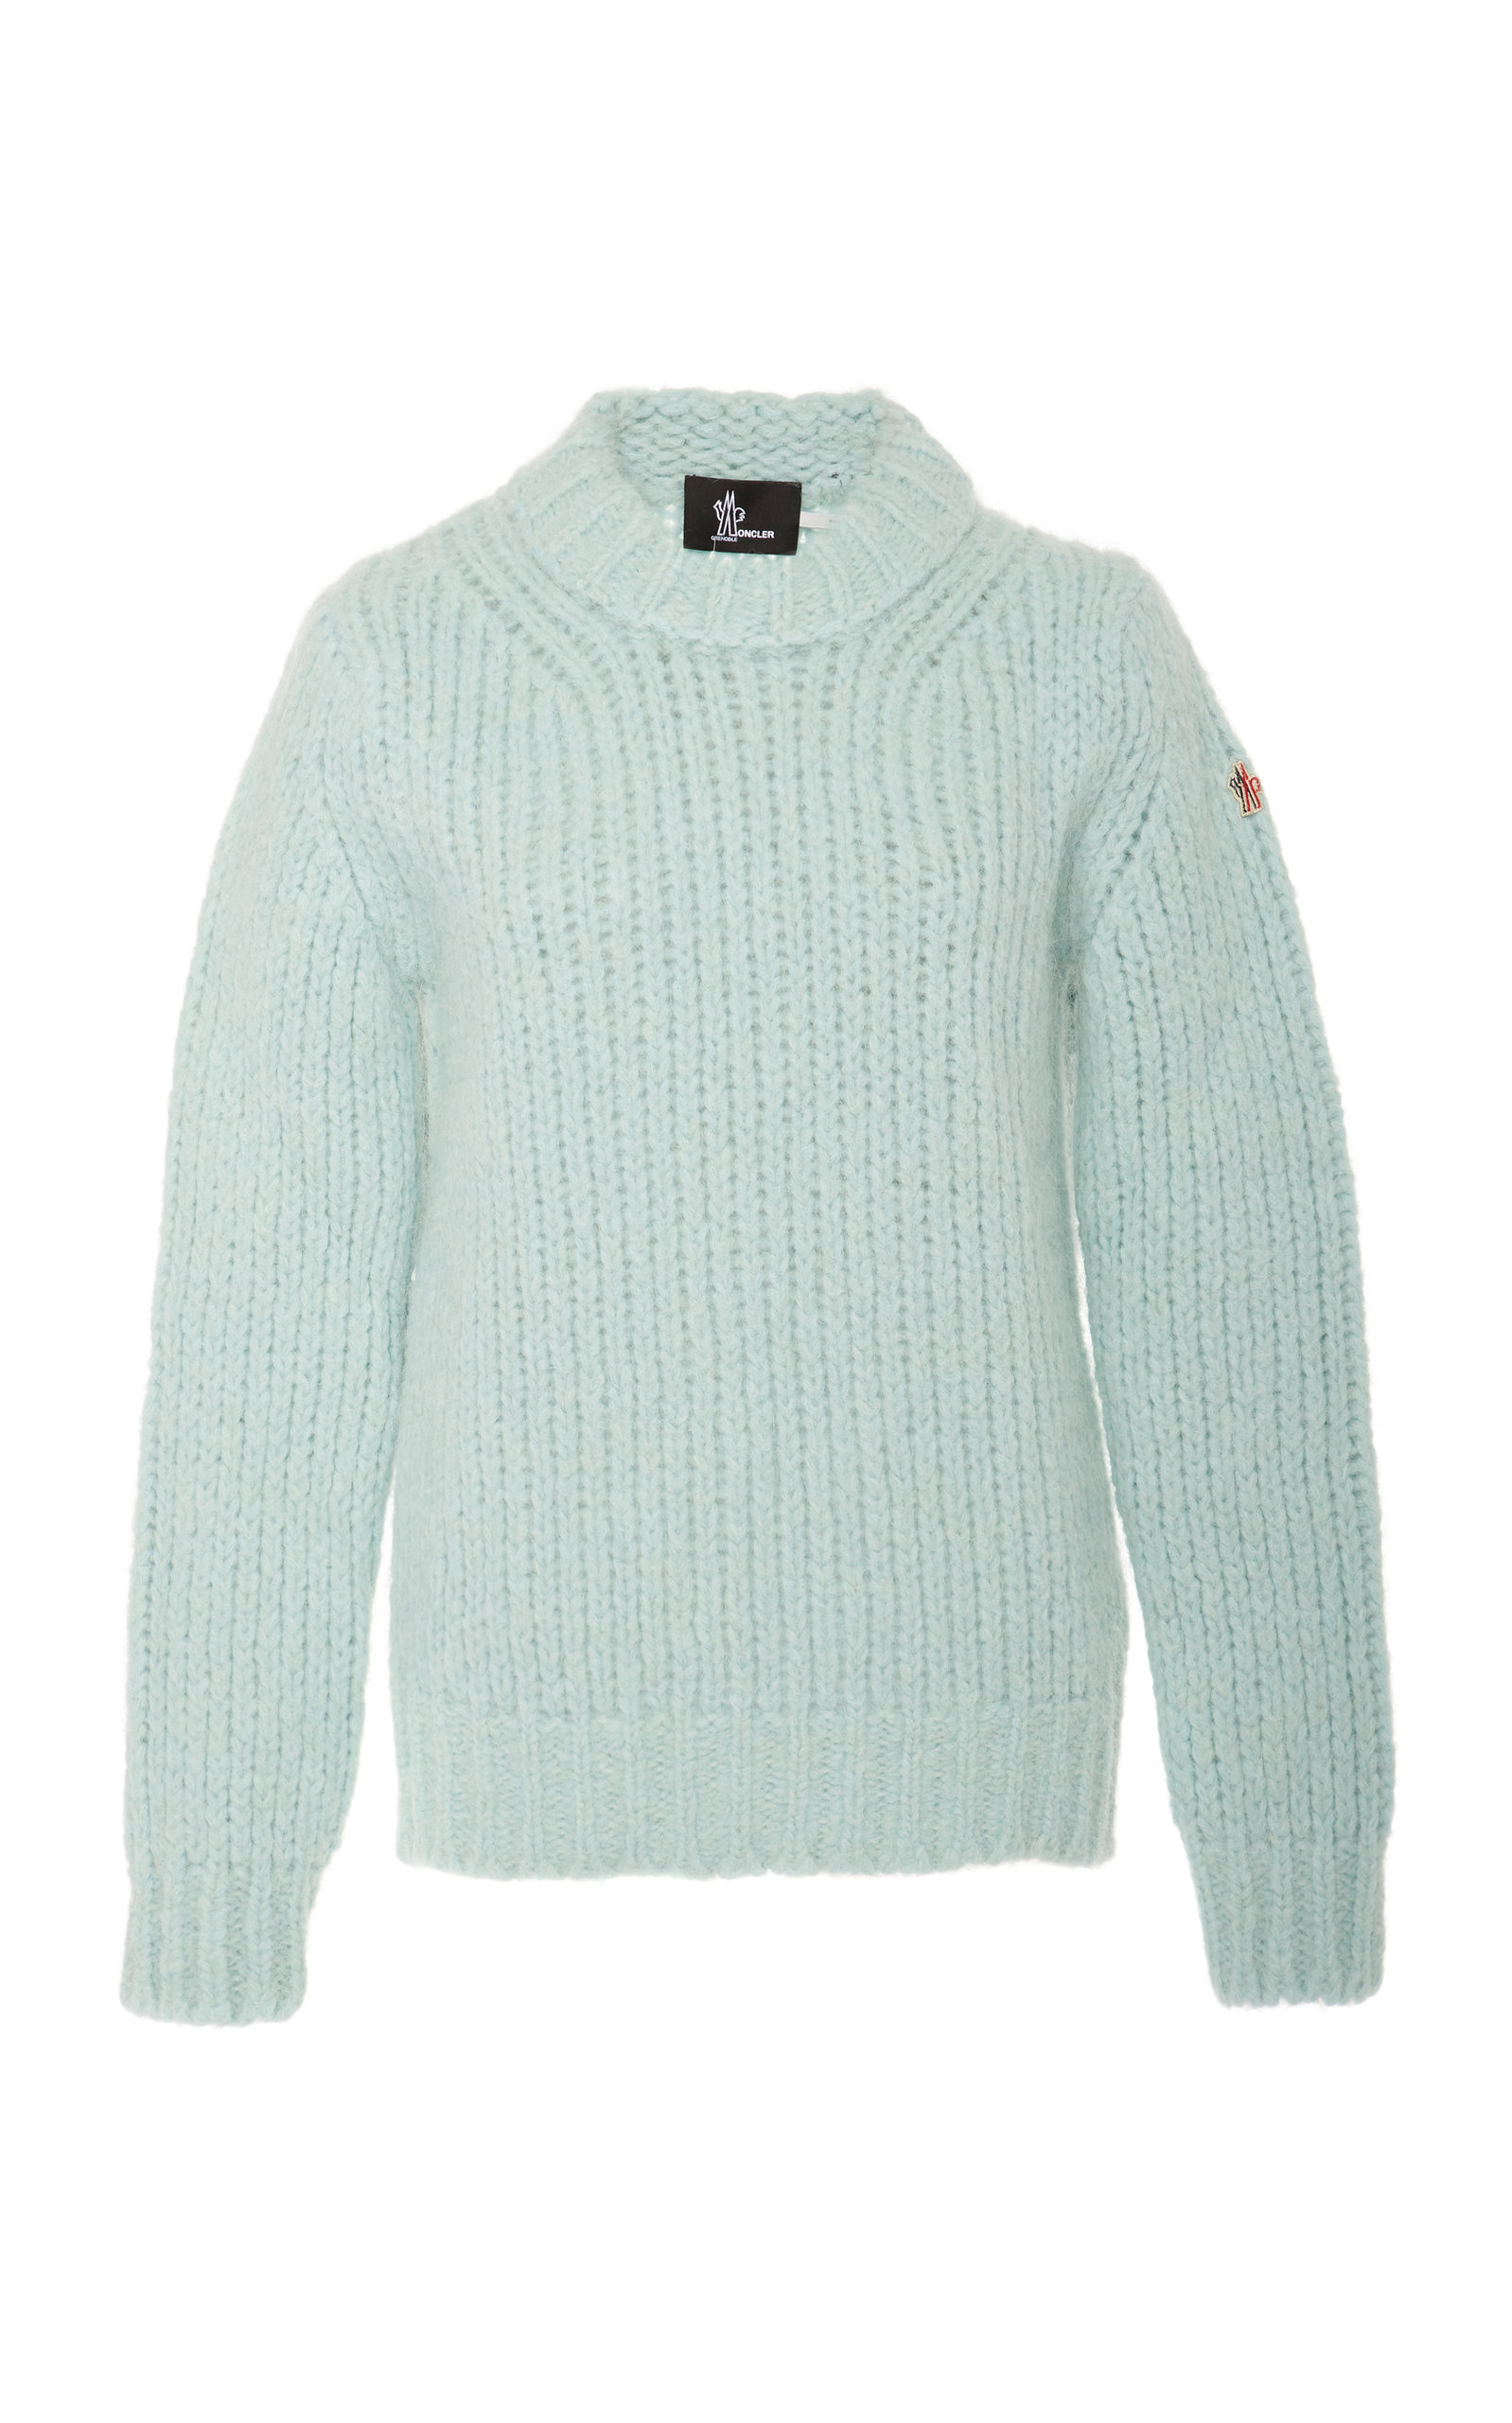 dcd6af017 Cable-Knit Alpaca-Blend Sweater by Moncler Genius